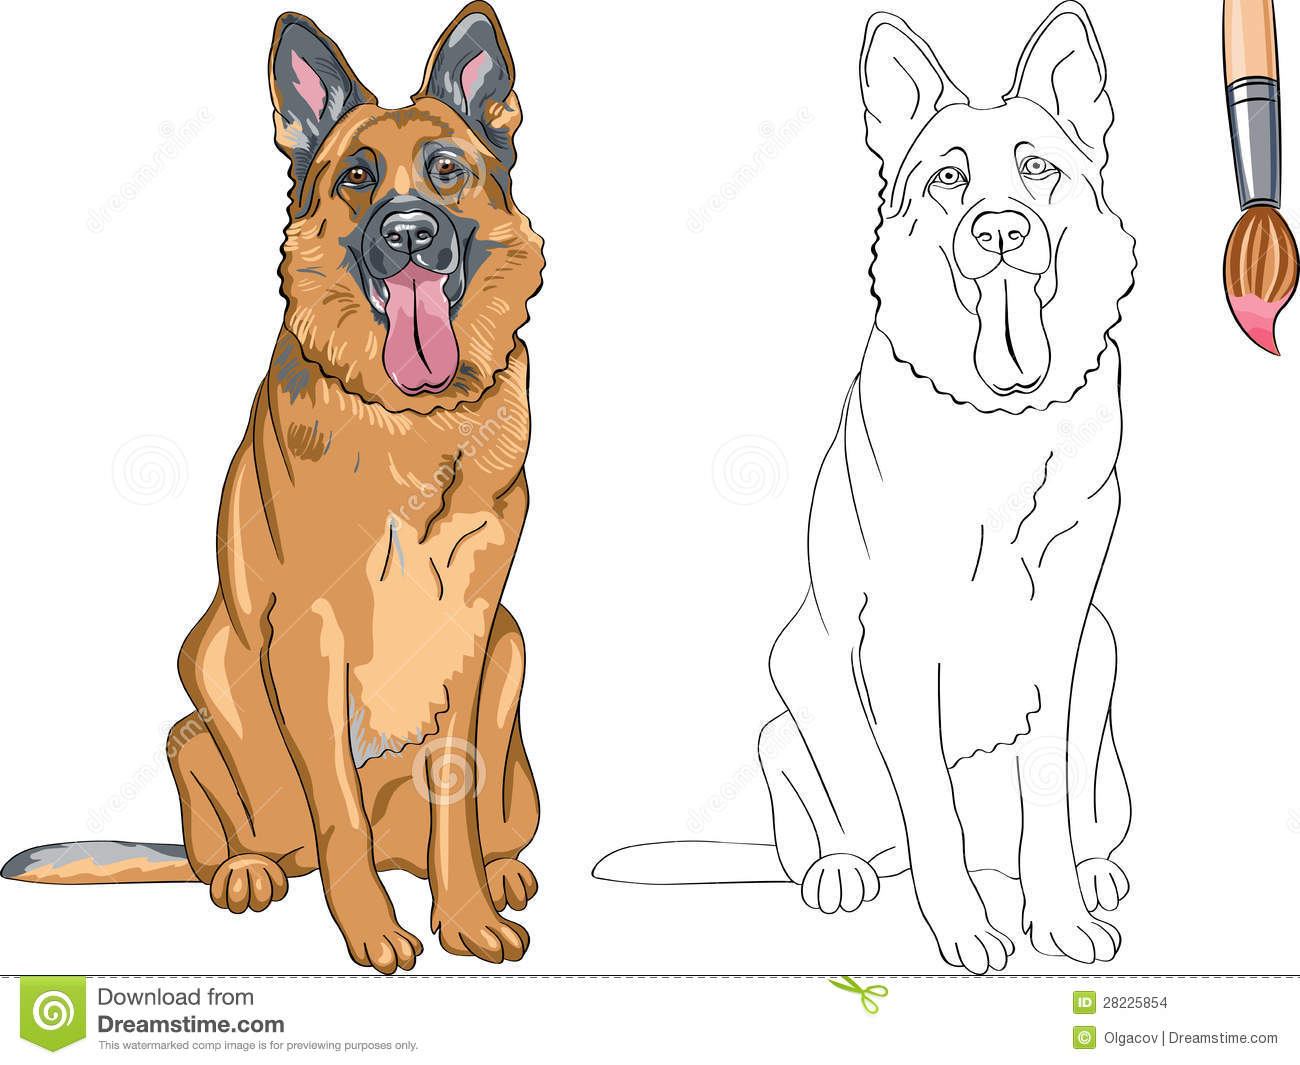 Coloring Book for Children of funny smiling dog German shepherd breed.